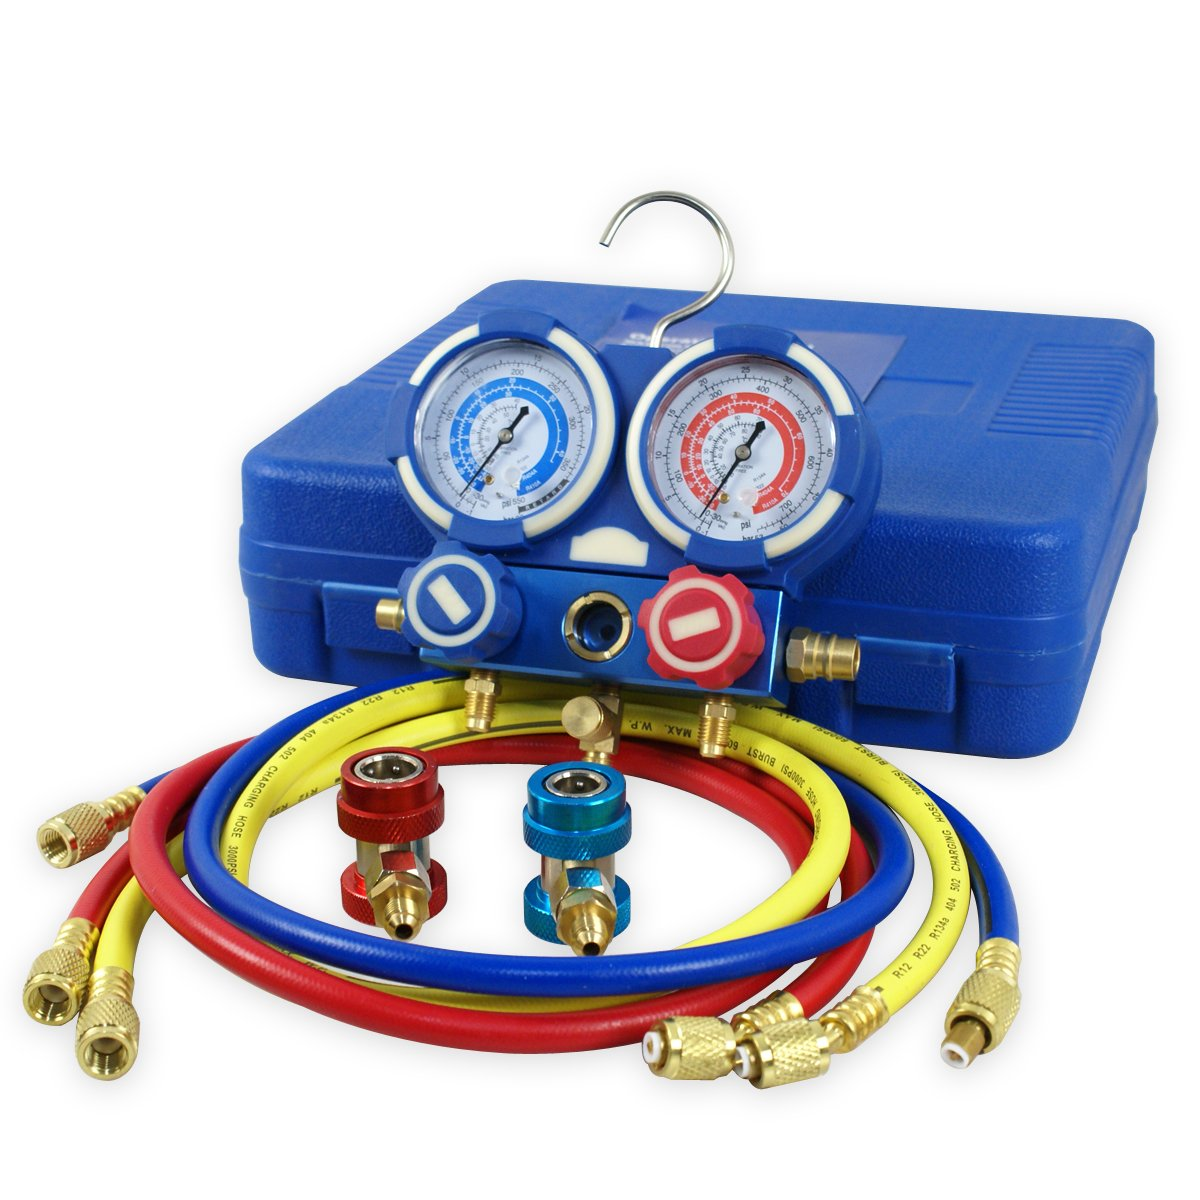 ZENY Diagnostic A/C Manifold Gauge Set R134a Refrigeration Kit Brass Auto Serivice Kit 4FT w/Case, 1/4'' SAE Fittings